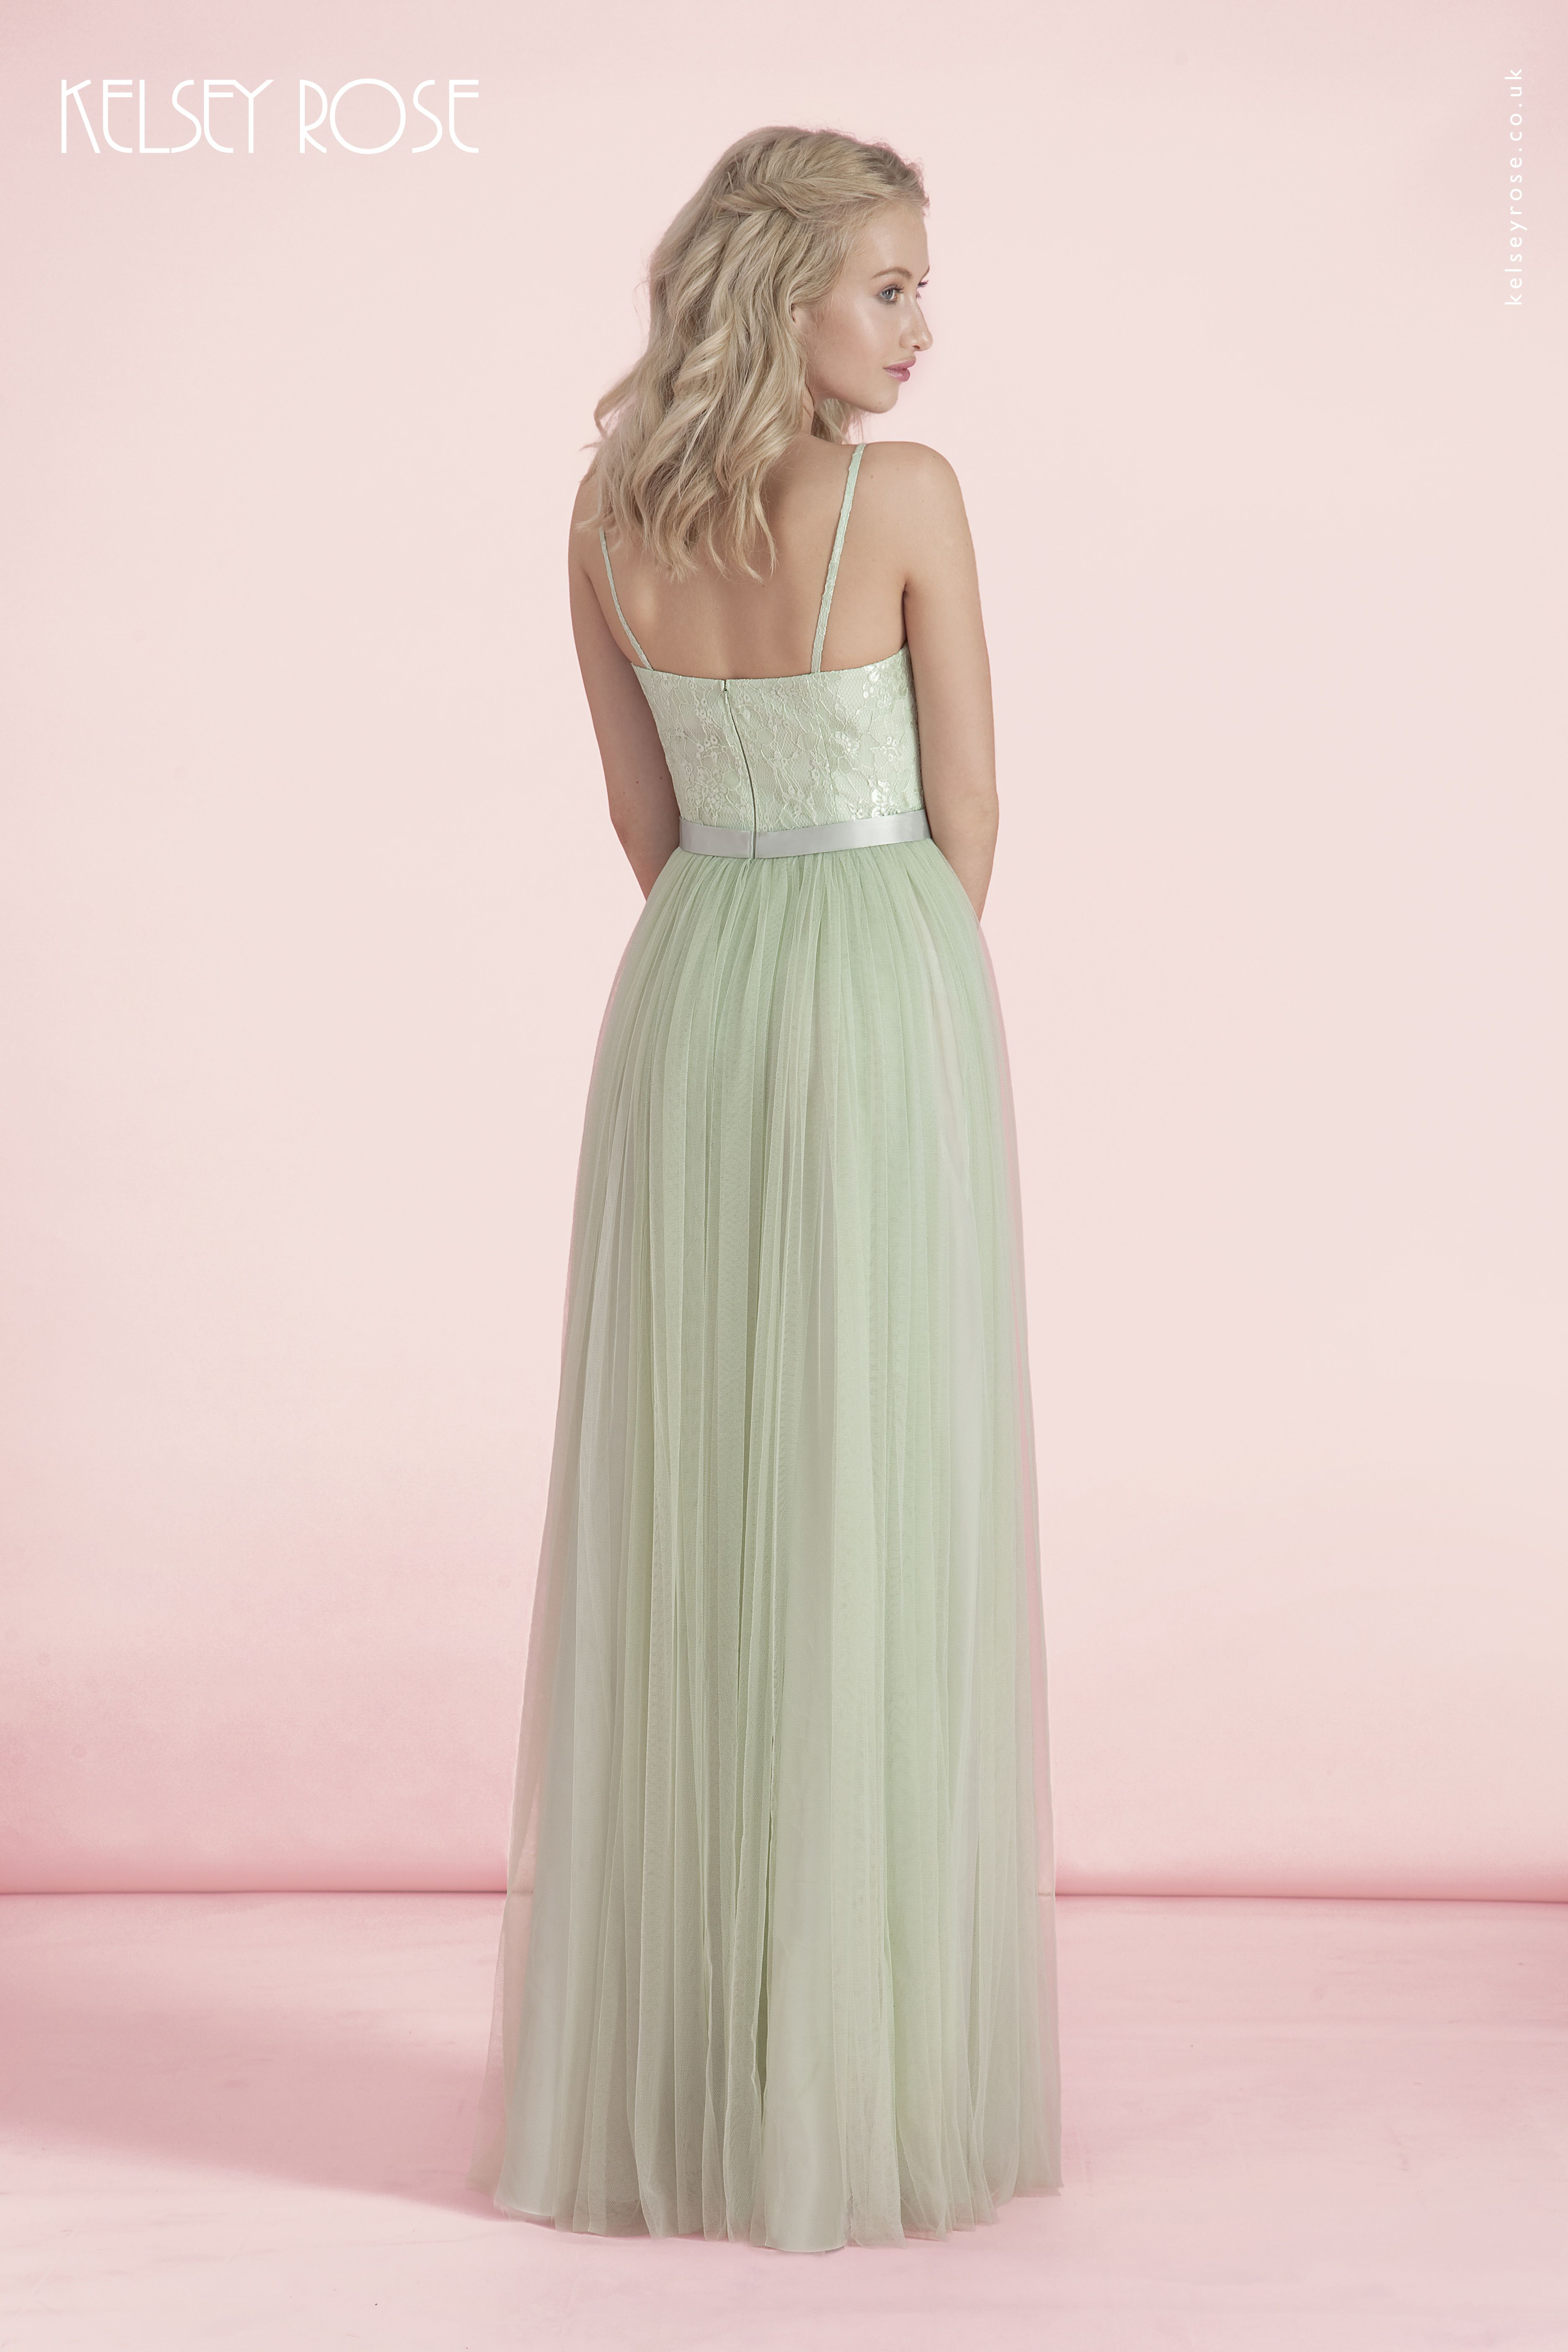 Kelsey rose bridesmaid style 50108 forlover pinterest weddings kelsey rose bridesmaid style 50108 ombrellifo Images